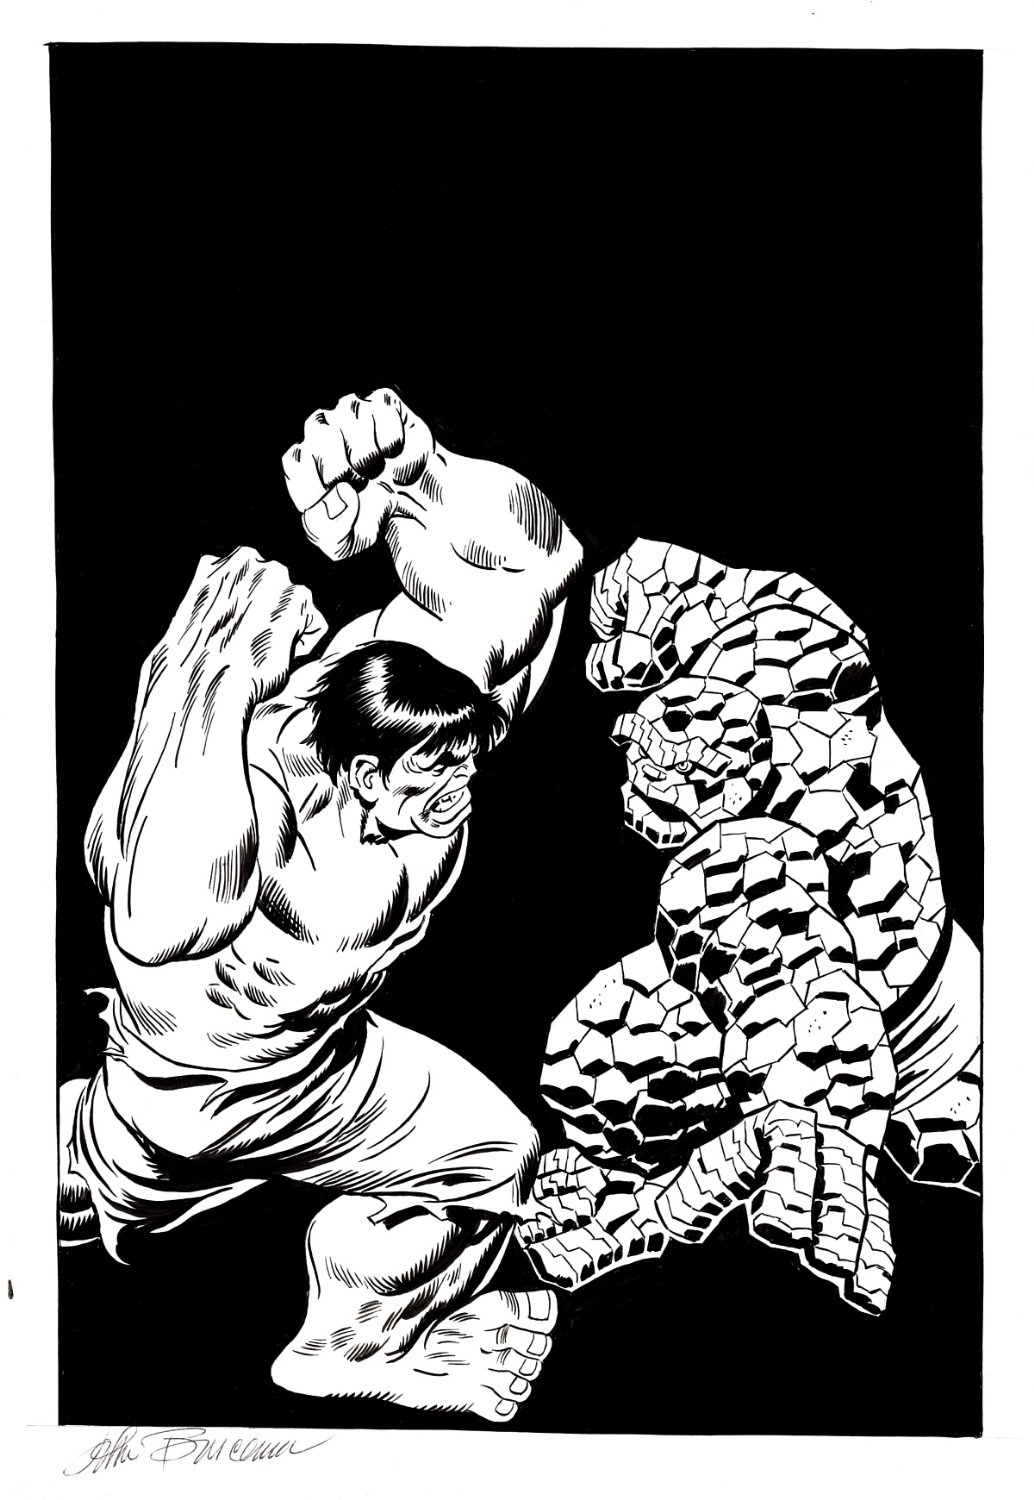 Fantastic Four #112 Cover Recreation Drawn 6 Years Before JB Started Doing His Multiple Recreations (1 OF THE MOST REMEMBERED JOHN BUSCEMA COVERS!) 1992